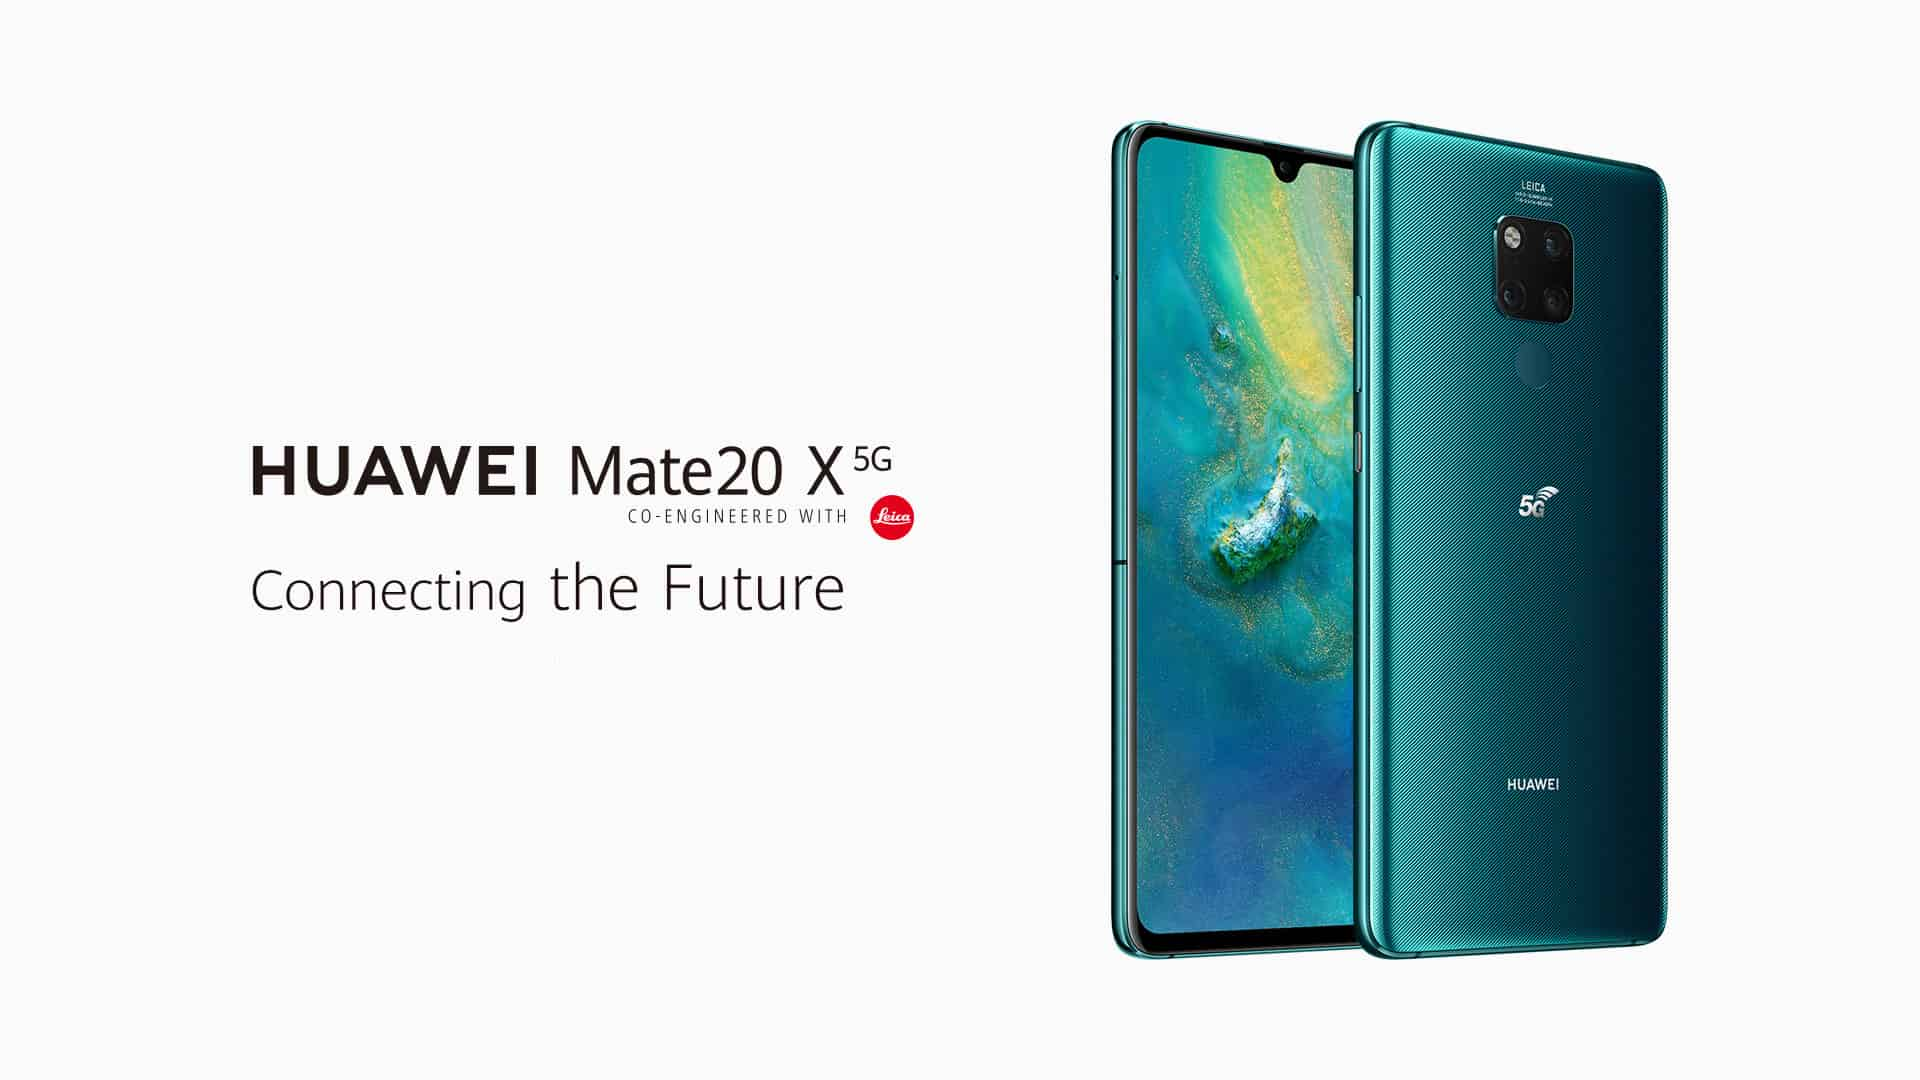 Huawei Mate 20 X 5G to launch in China on July 26 - Leaked invite!